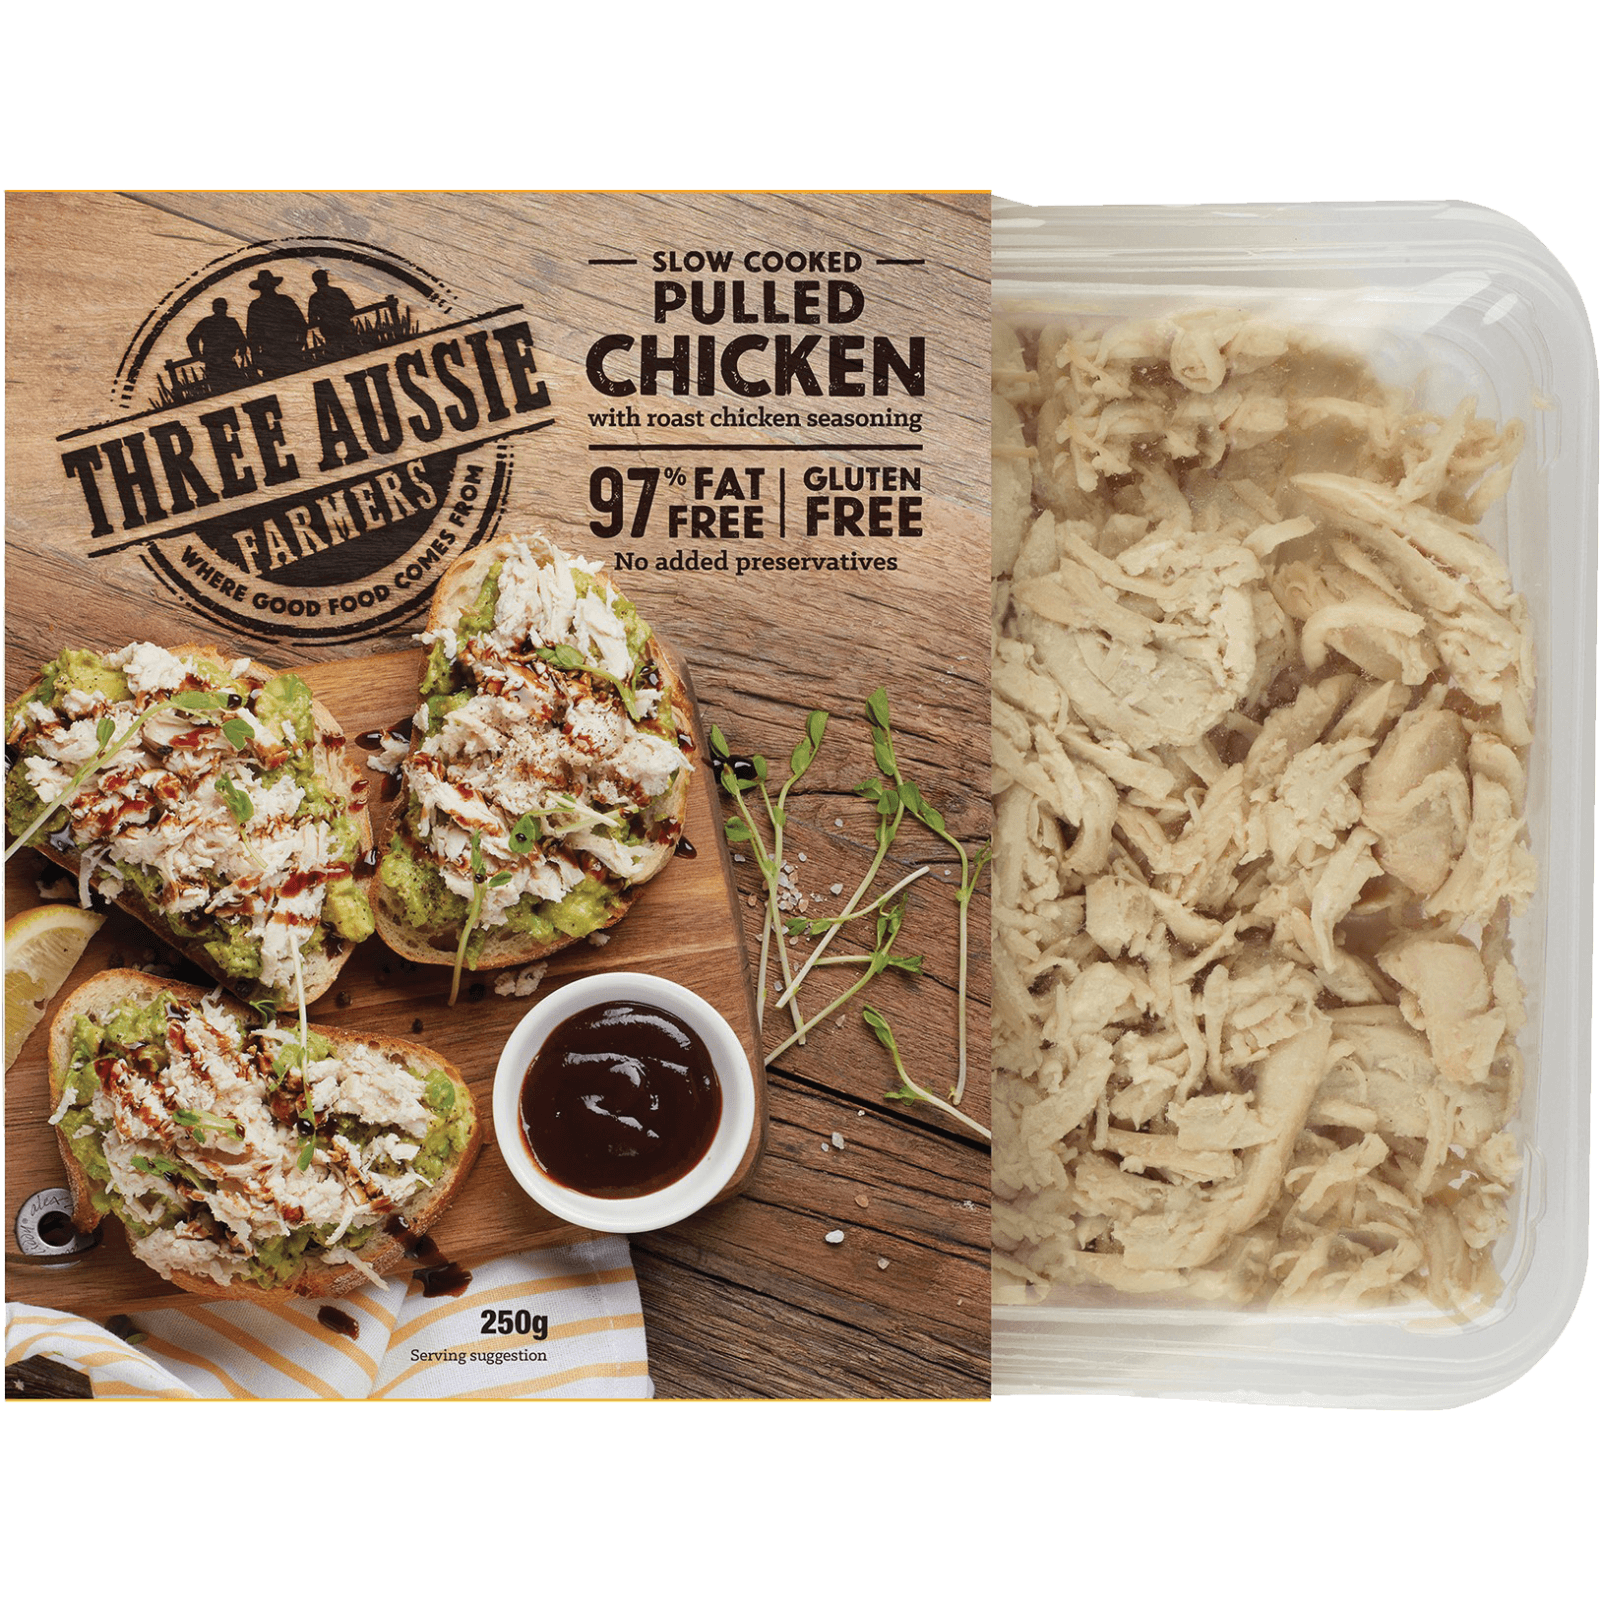 Three Aussie Farmers Slow Cooked Pulled Chicken